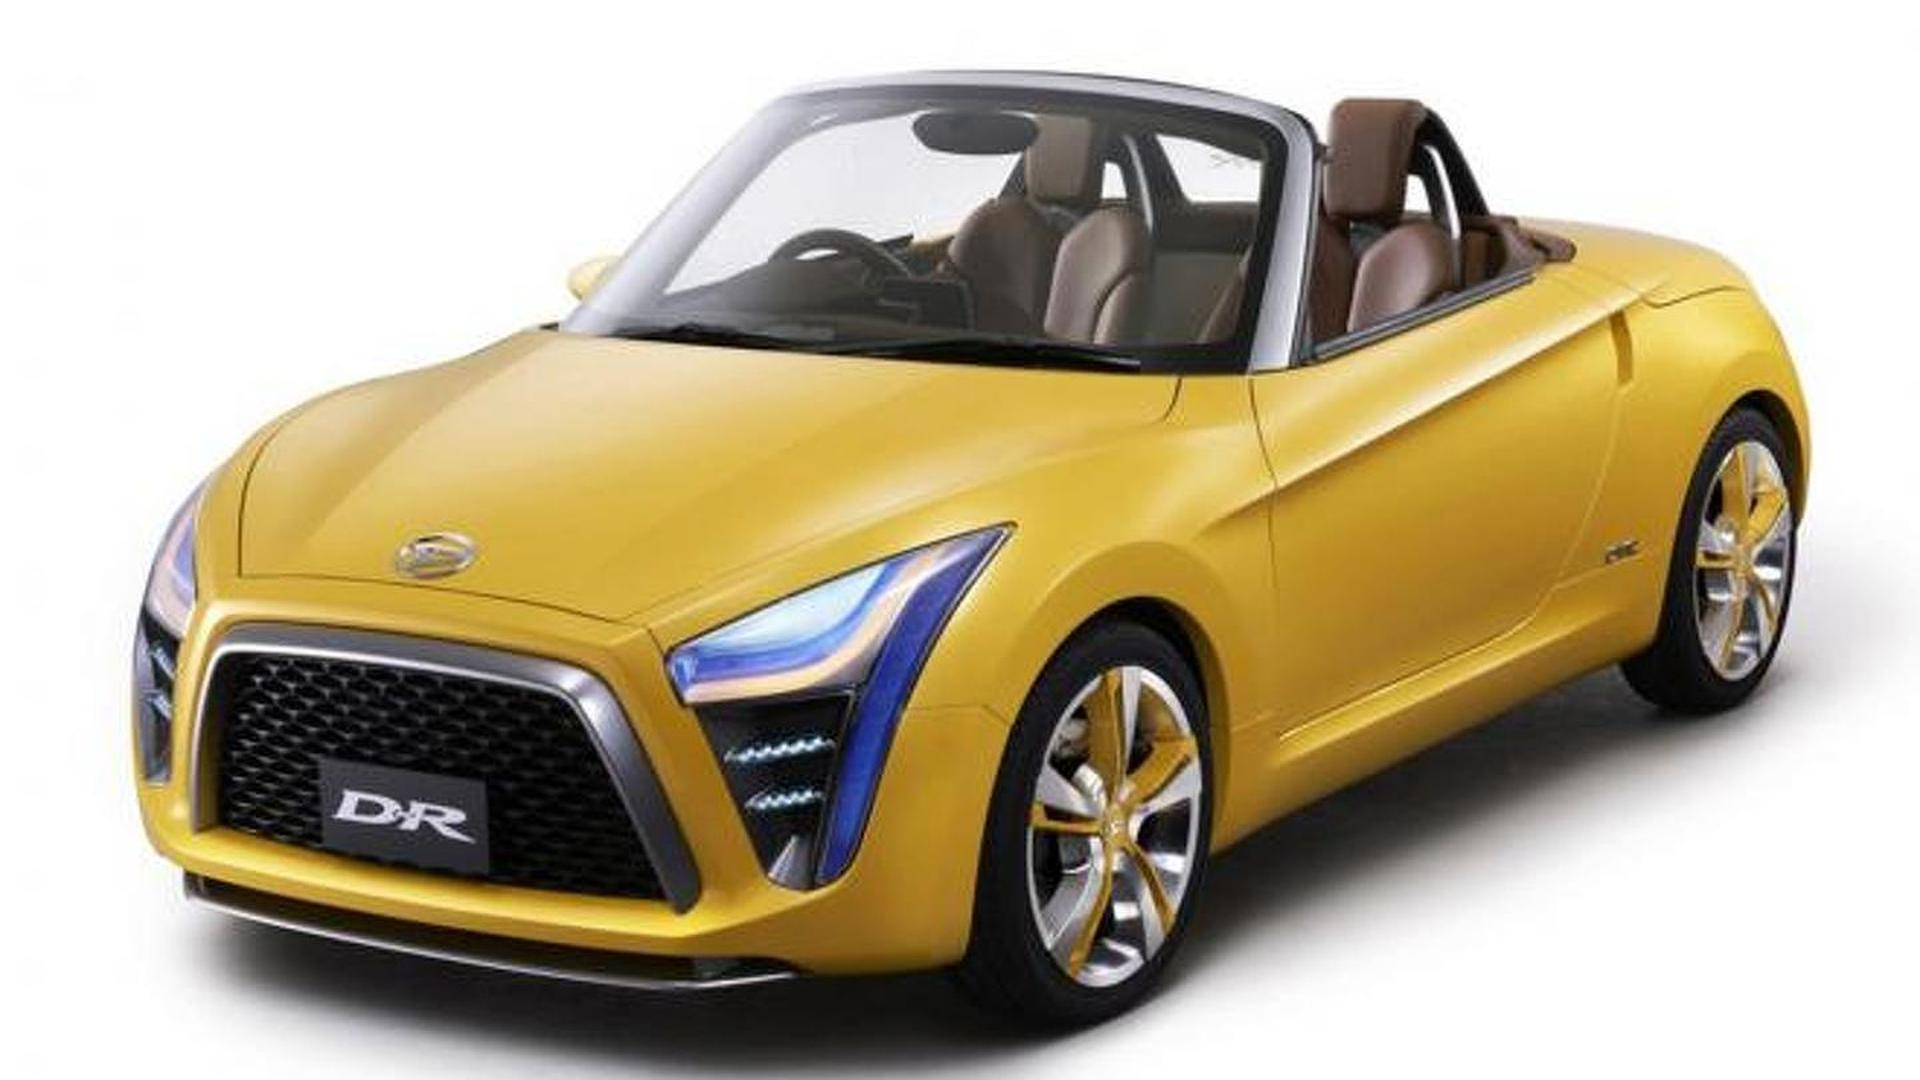 Daihatsu Copen to be resurrected - report